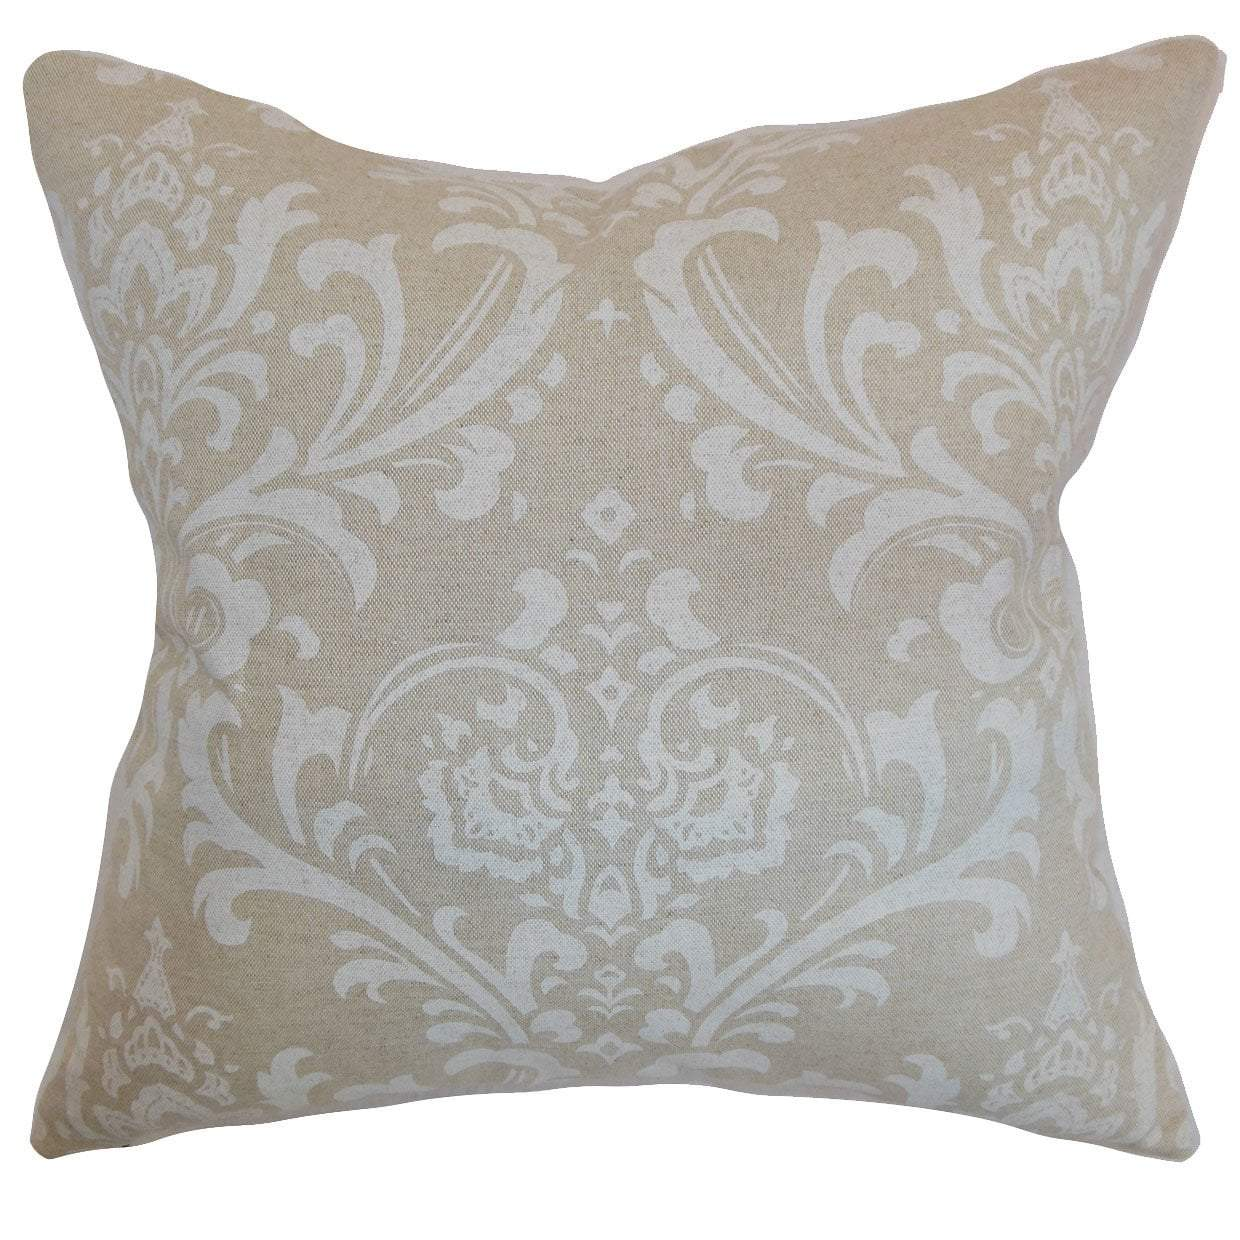 Knight Throw Pillow Cover